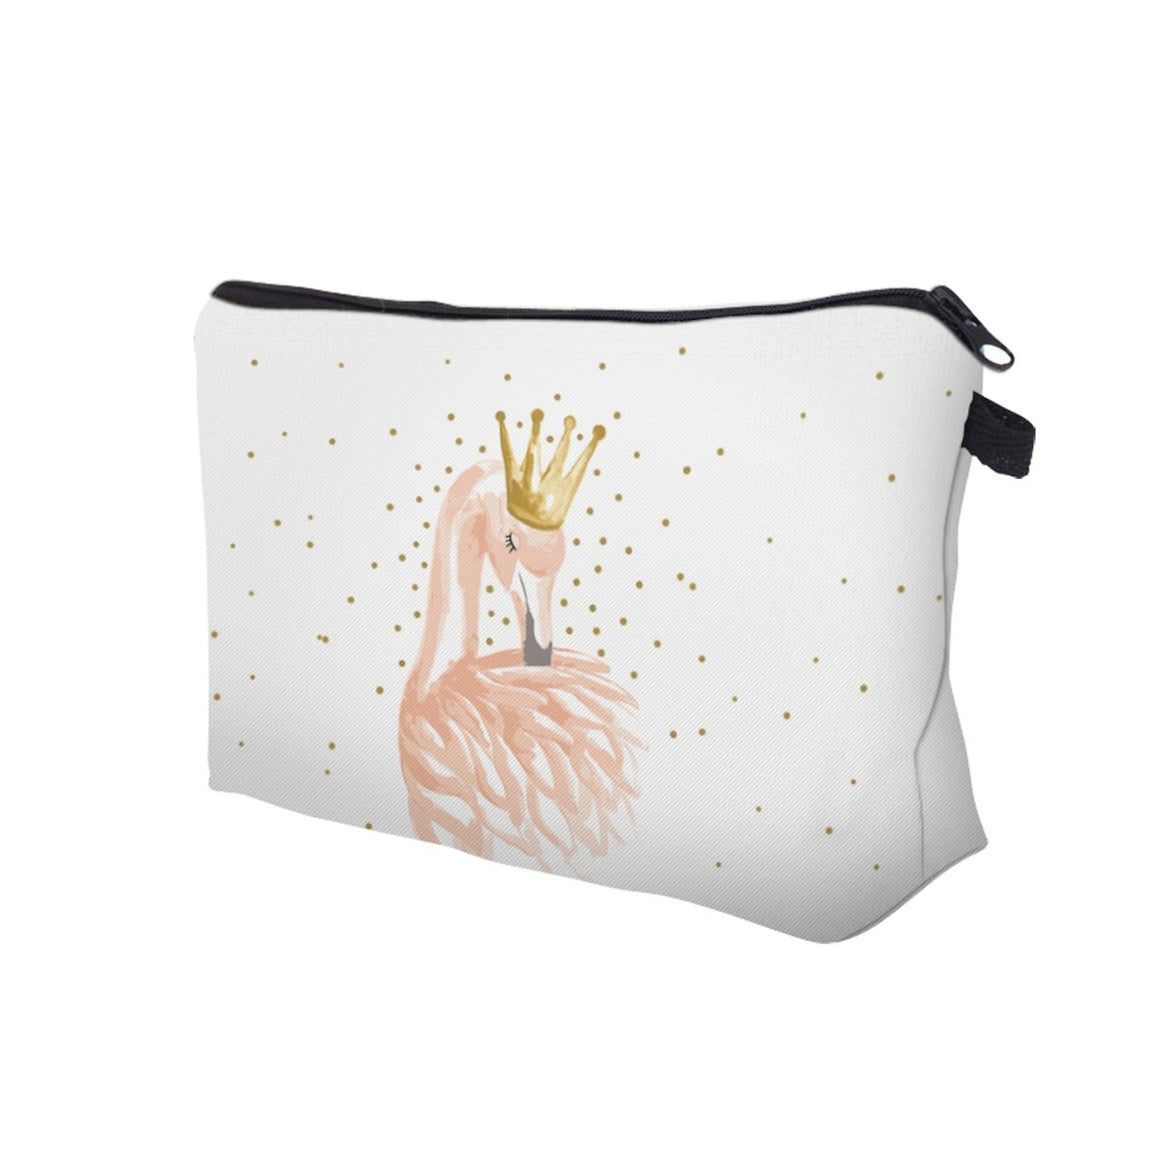 Deanfun Cosmetic Bags 3D Printing Flamingo Princess Cute Gift for Girls Makeup Organizer Dropshipping 51071